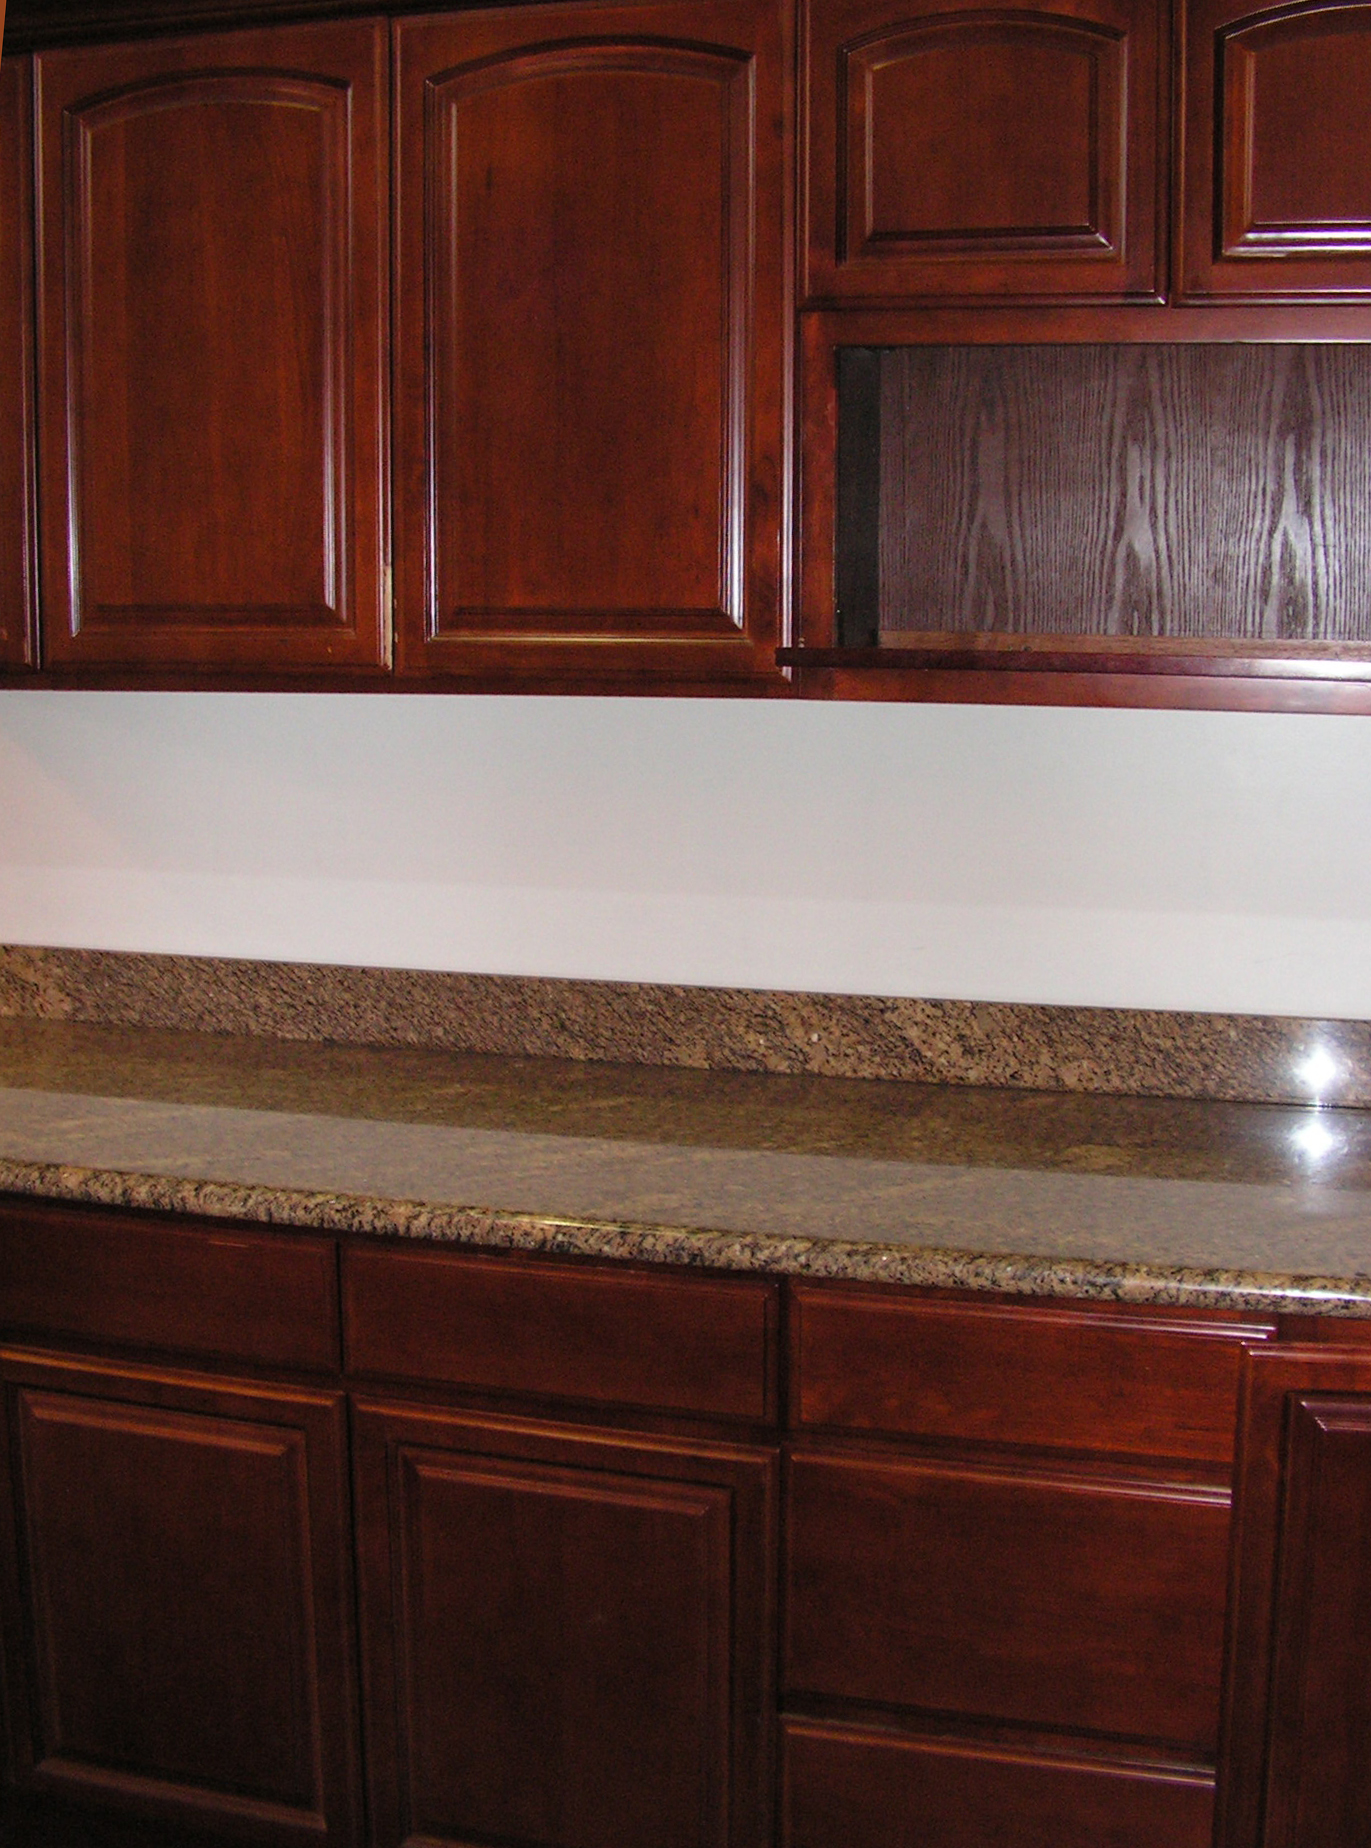 allcabinets kitchen cabinets wholesale Oak Cherry Wholesale Kitchen Cabinets Cherry Cherry Stained